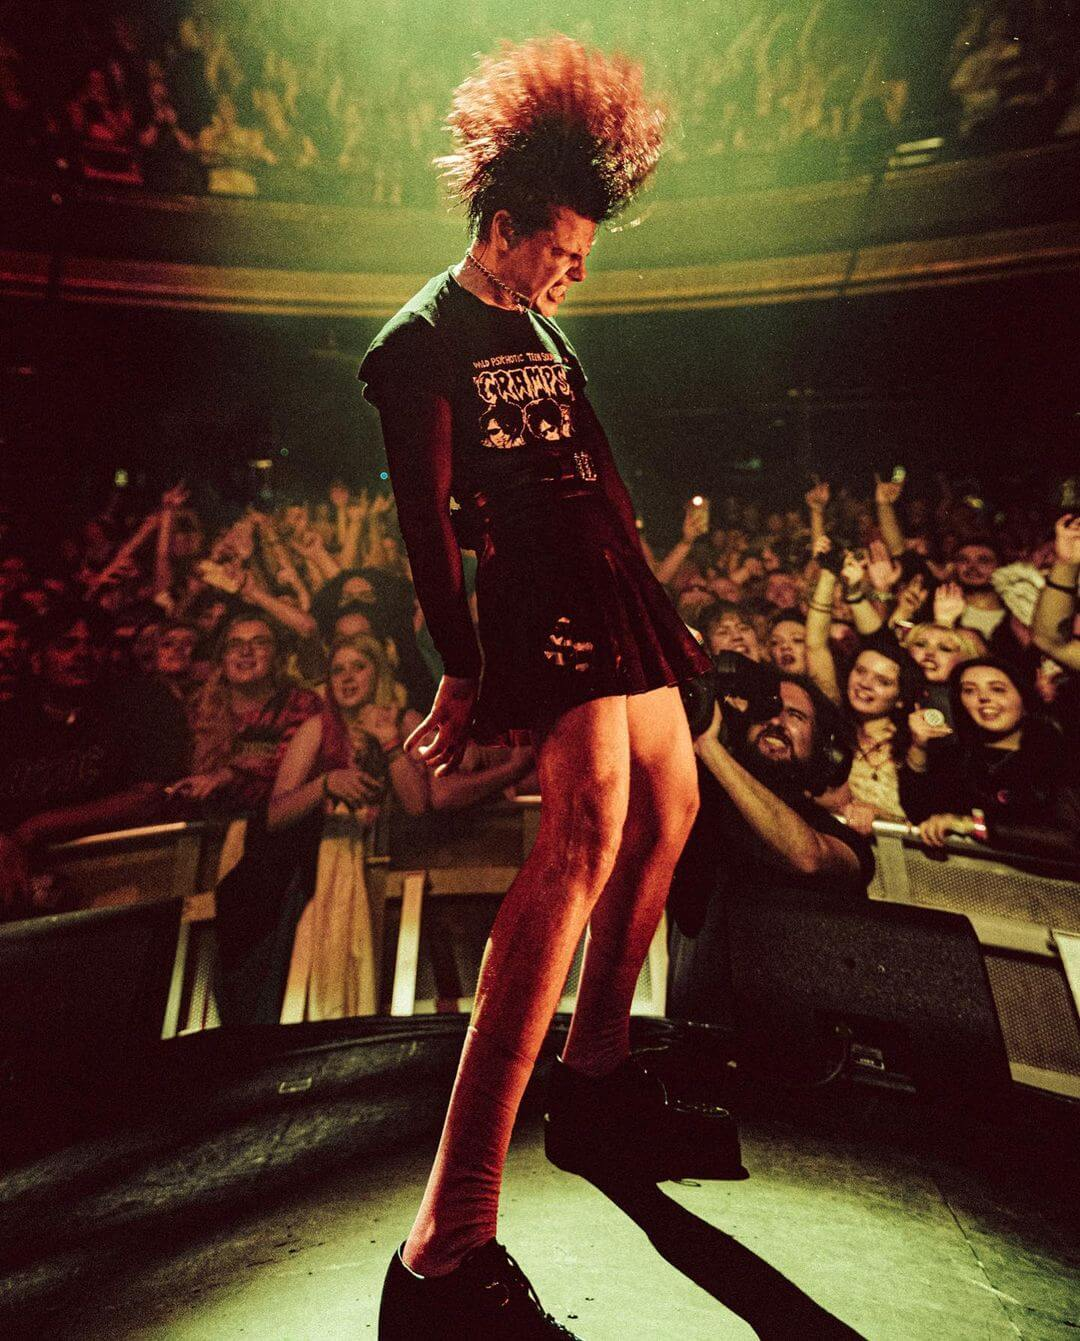 Yungblud live review - Underground blog Photo: Tom Pallant